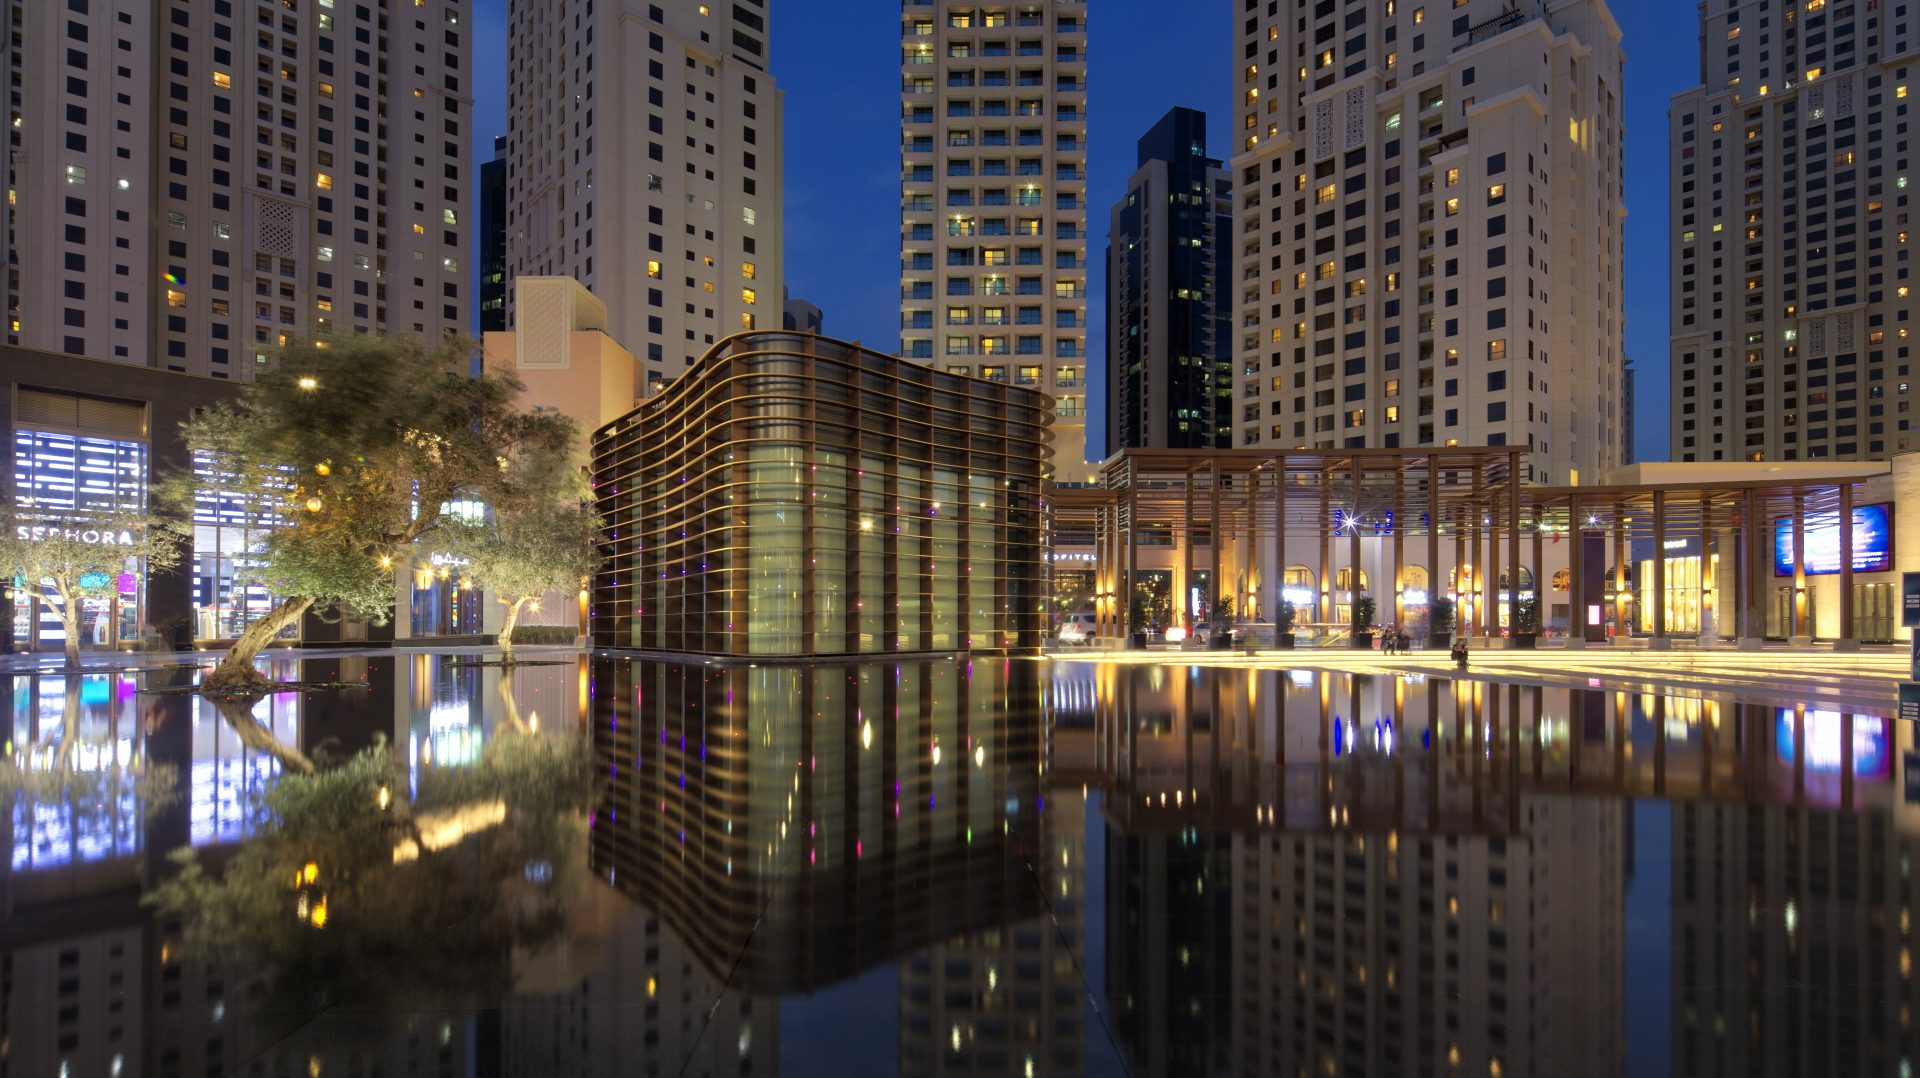 The Beach at JBR - Dubai Architect